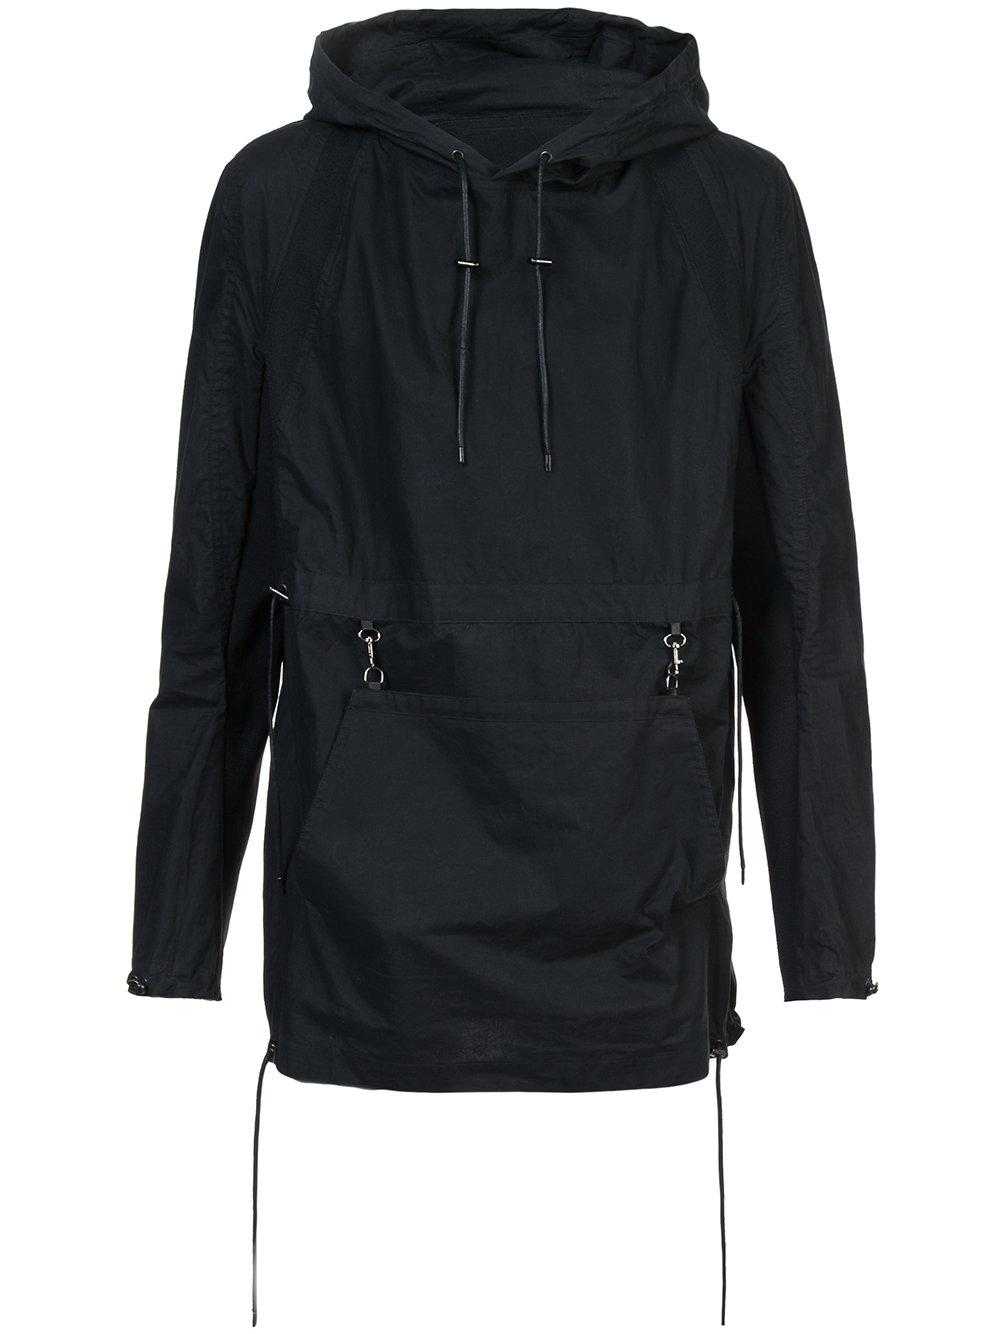 Y/project Y / Project Hooded Pullover - Black